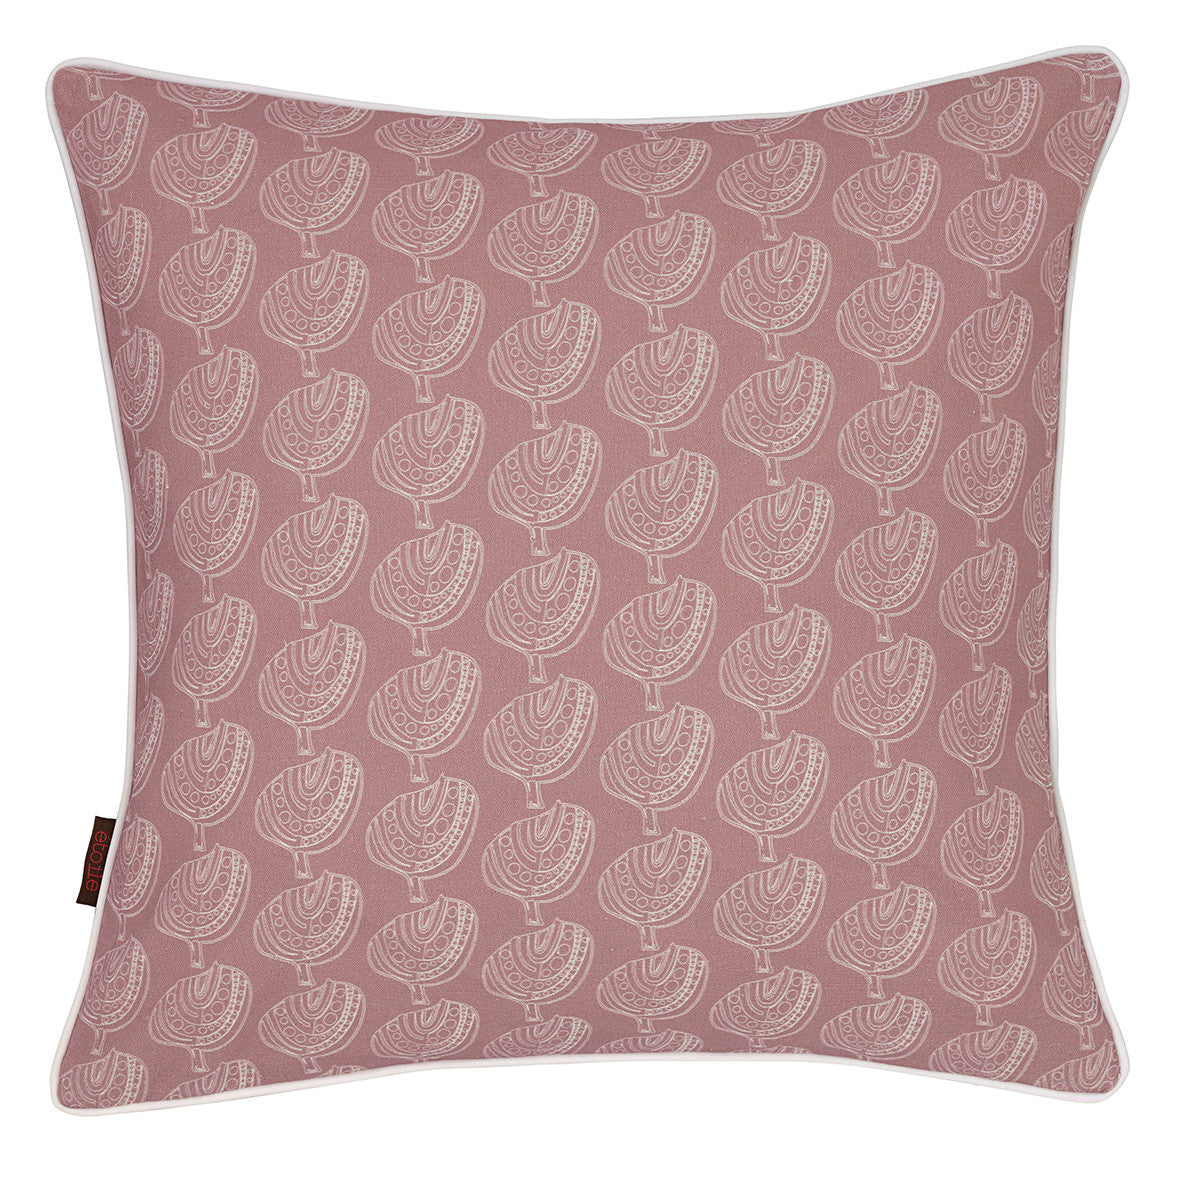 "Graphic Apple Tree Pattern Printed Linen Union Decorative Throw Pillow in Light Heather Pink 45x45cm (18x18"") Canada"